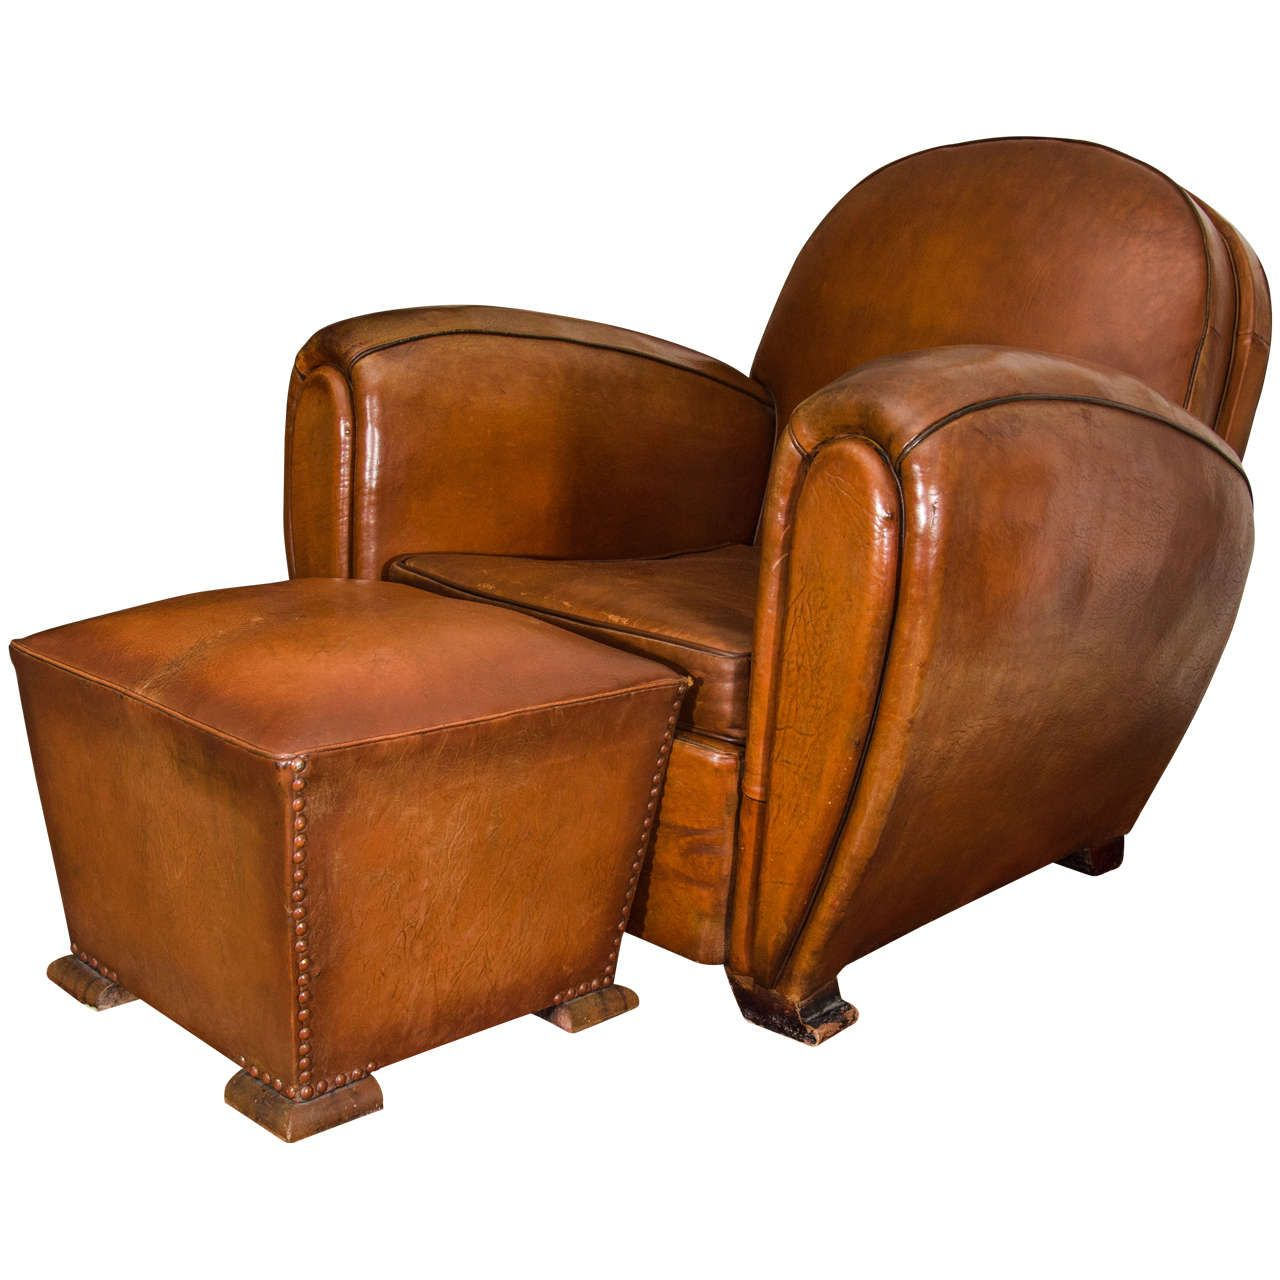 French Round Back Leather Club Chairs | From A Unique Collection Of Antique  And Modern Club Chairs At Https://www.1stdibs.com/furniture/seating/club  Chairs/